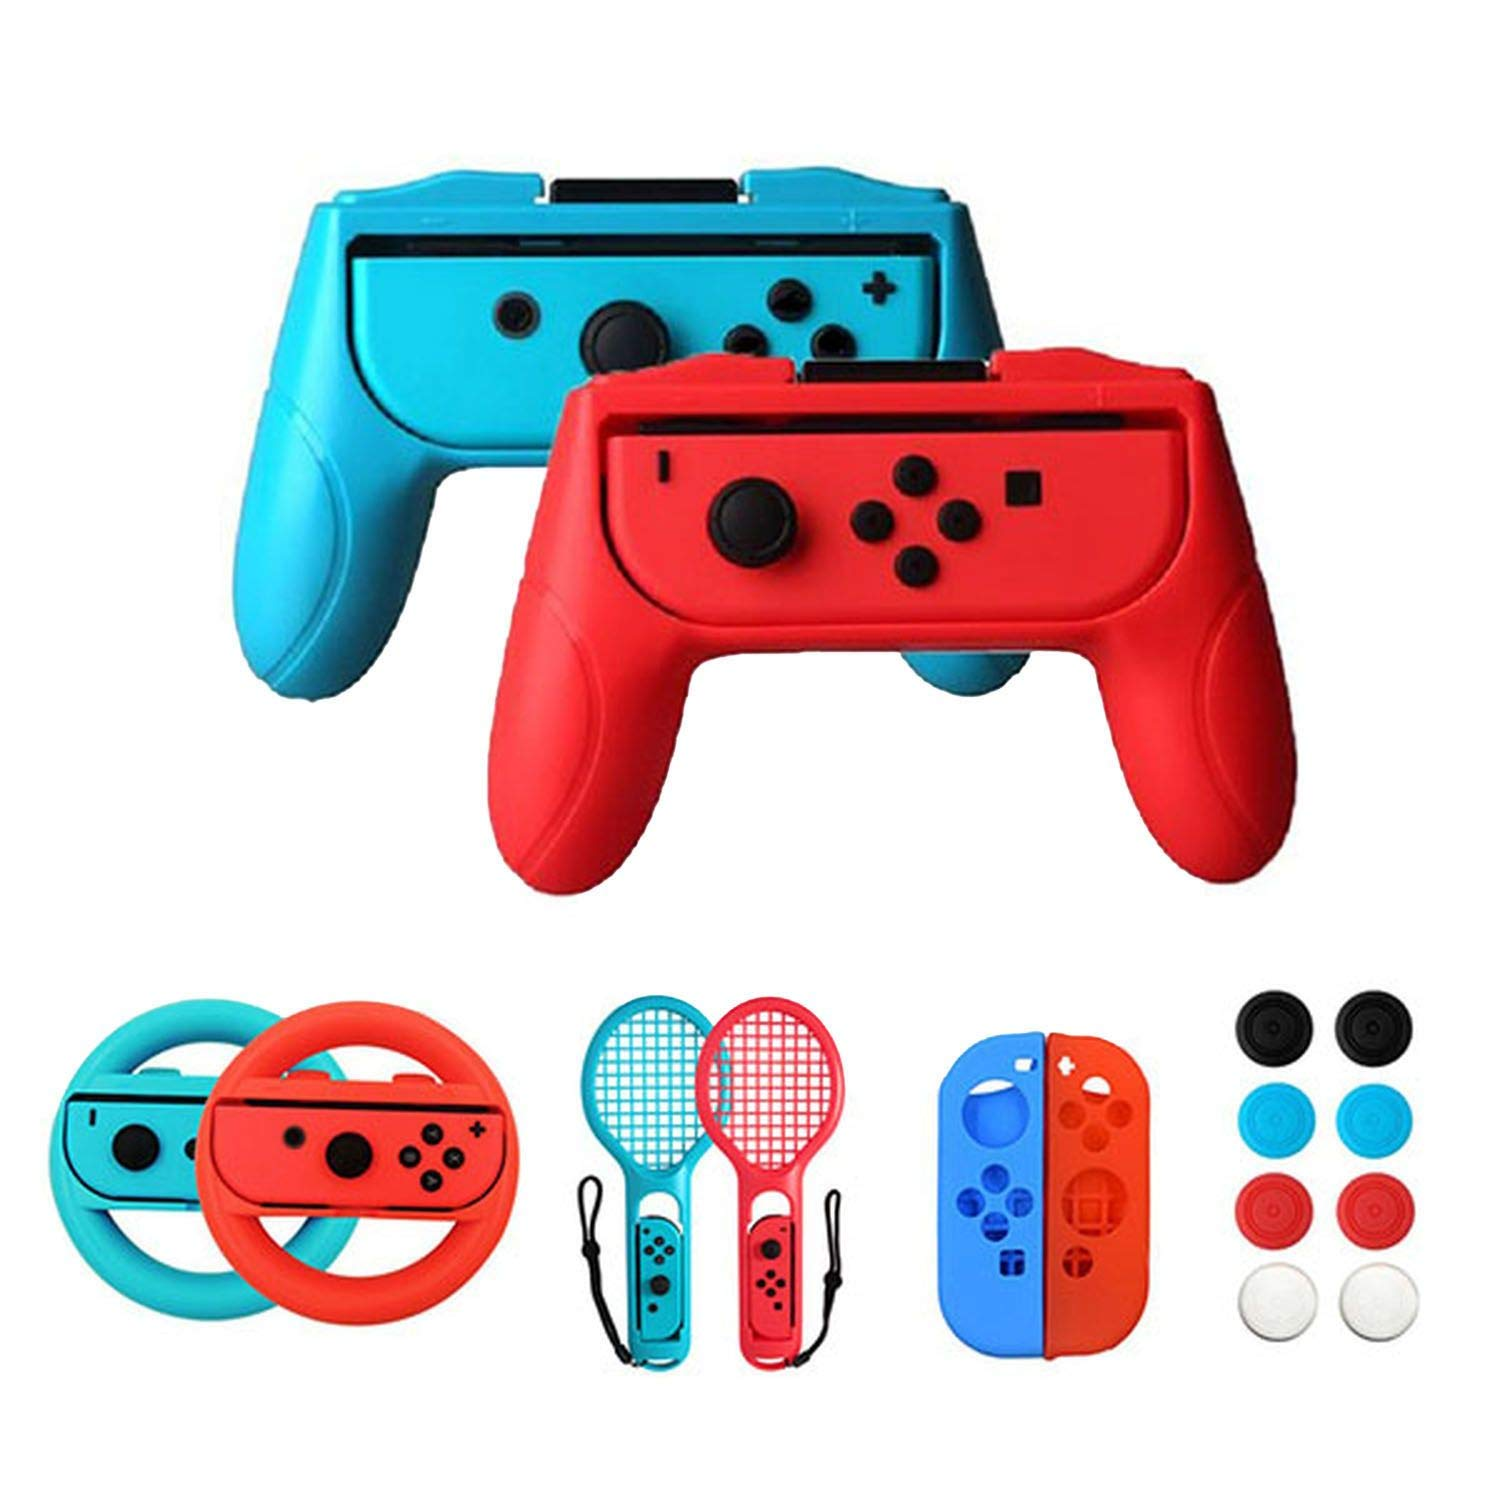 2 Pieces/set Controller Grips Case for Nintendo Switch Handle NS Nintendo Switch Game Console Accessories,16 in 1